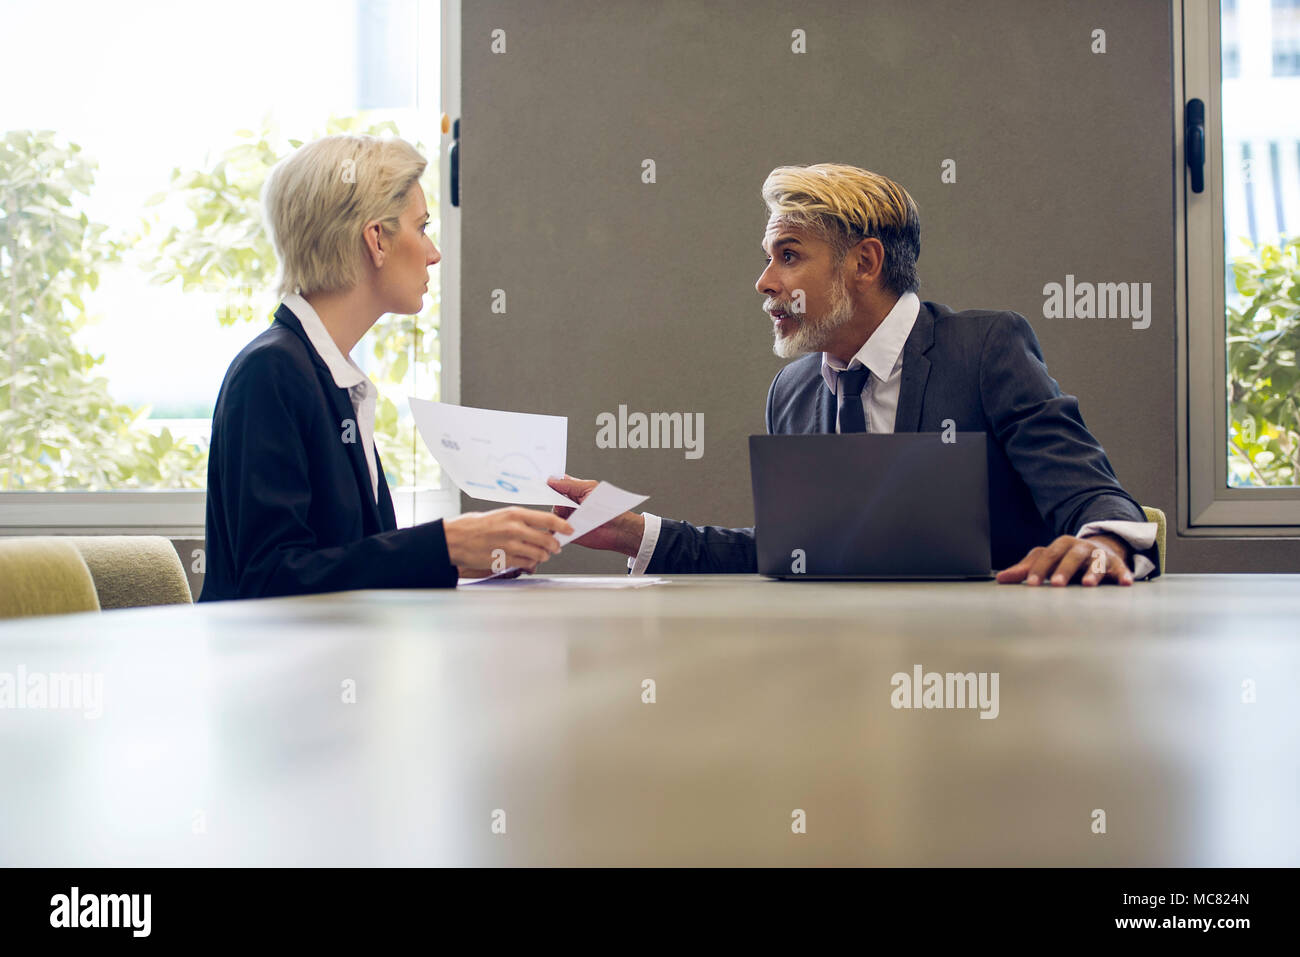 Man and woman meeting in office - Stock Image